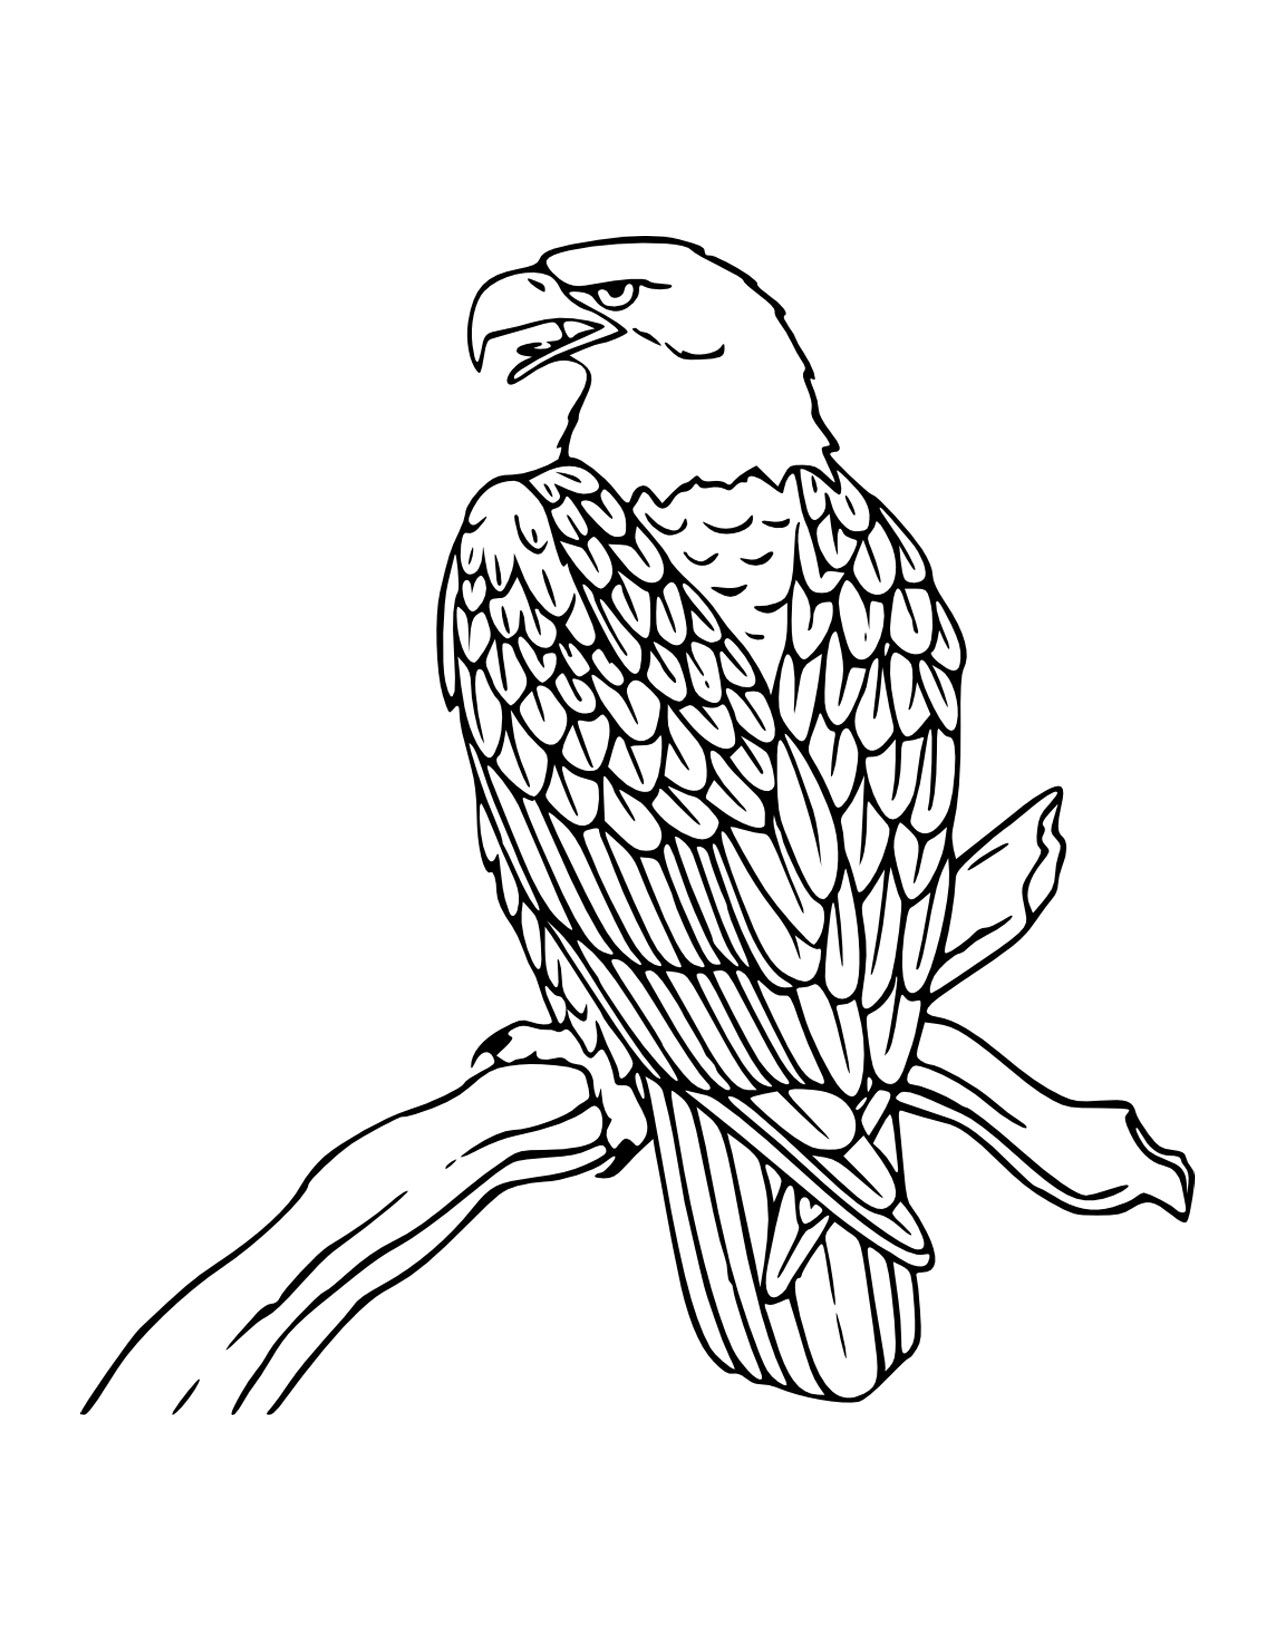 Newest Coloring Pages Endangered Animals | Coloring Pages ...